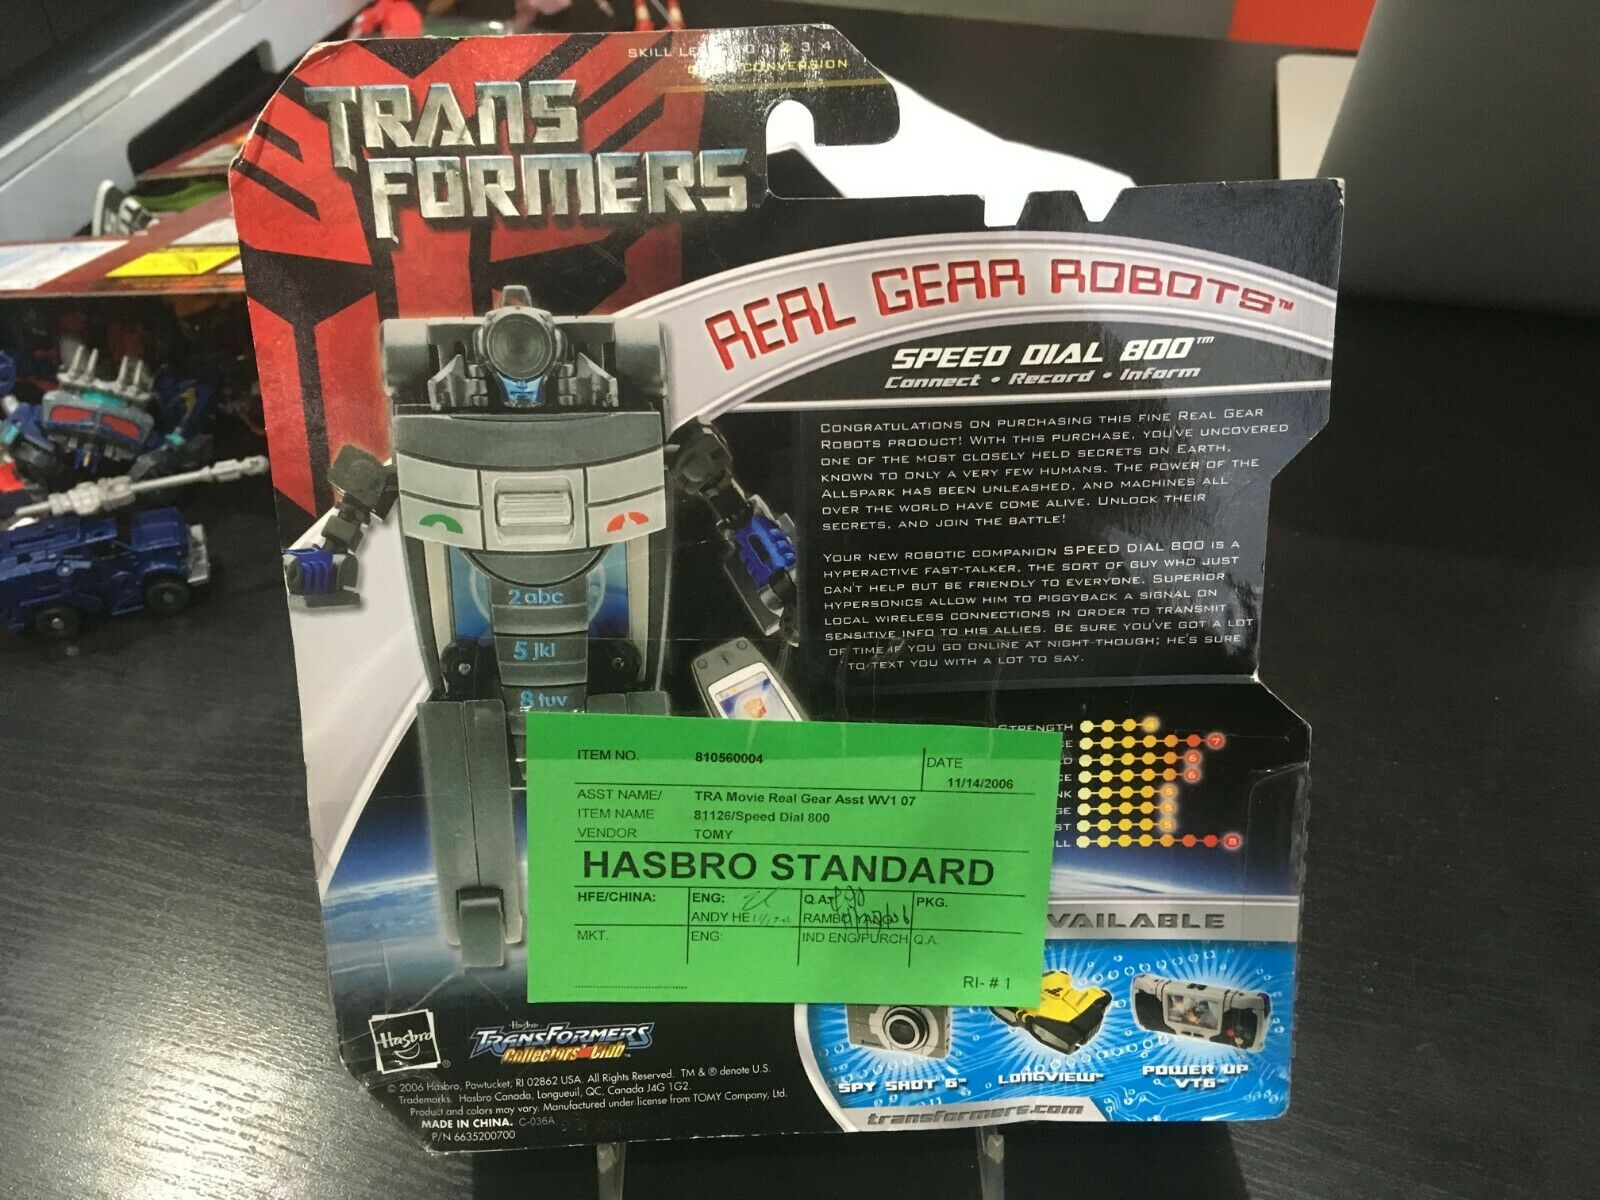 TRANSFORMERS REAL GEAR ROBOTS SPEED DIAL 800 HASBRO STeARD verde TAG